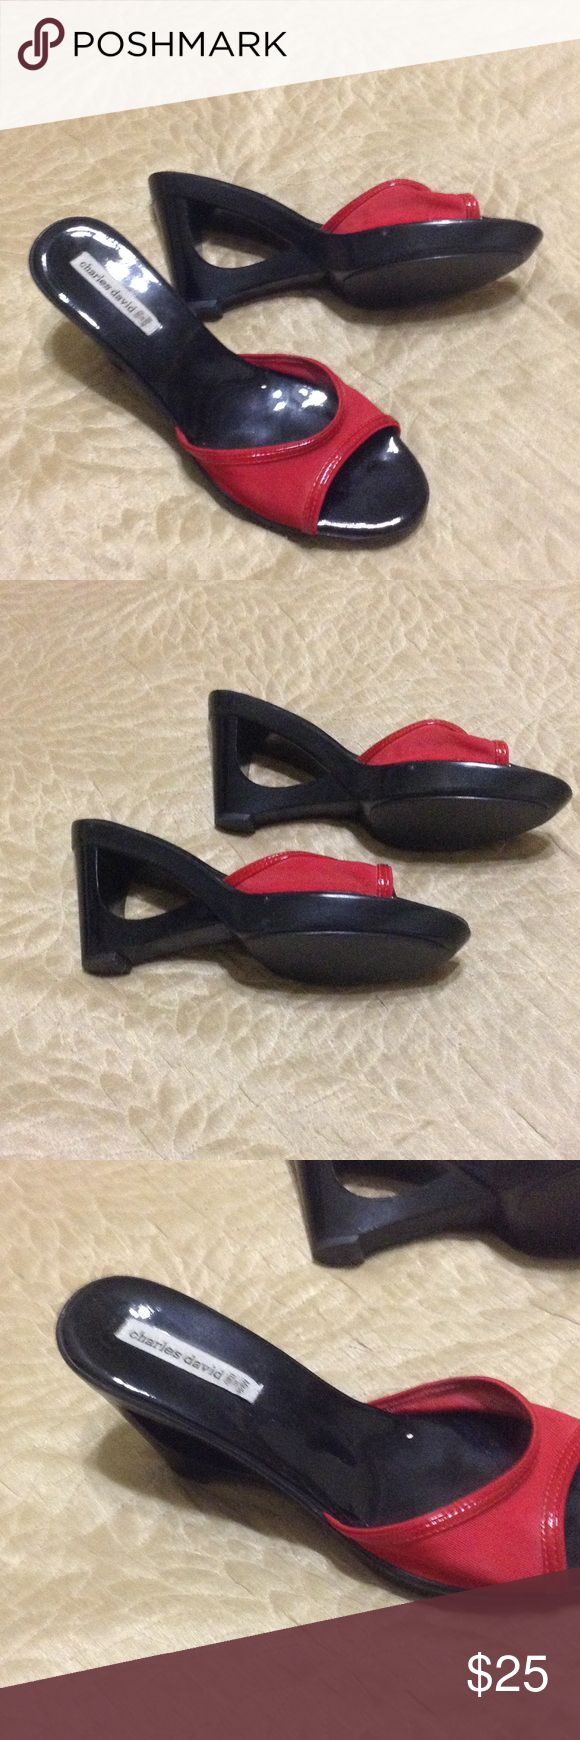 Charles David red wedges shoes Charles David red material in the front is plastic mesh and heels are hard plastic too,wedge shoes, made in Italy, size 8 Charles David Shoes